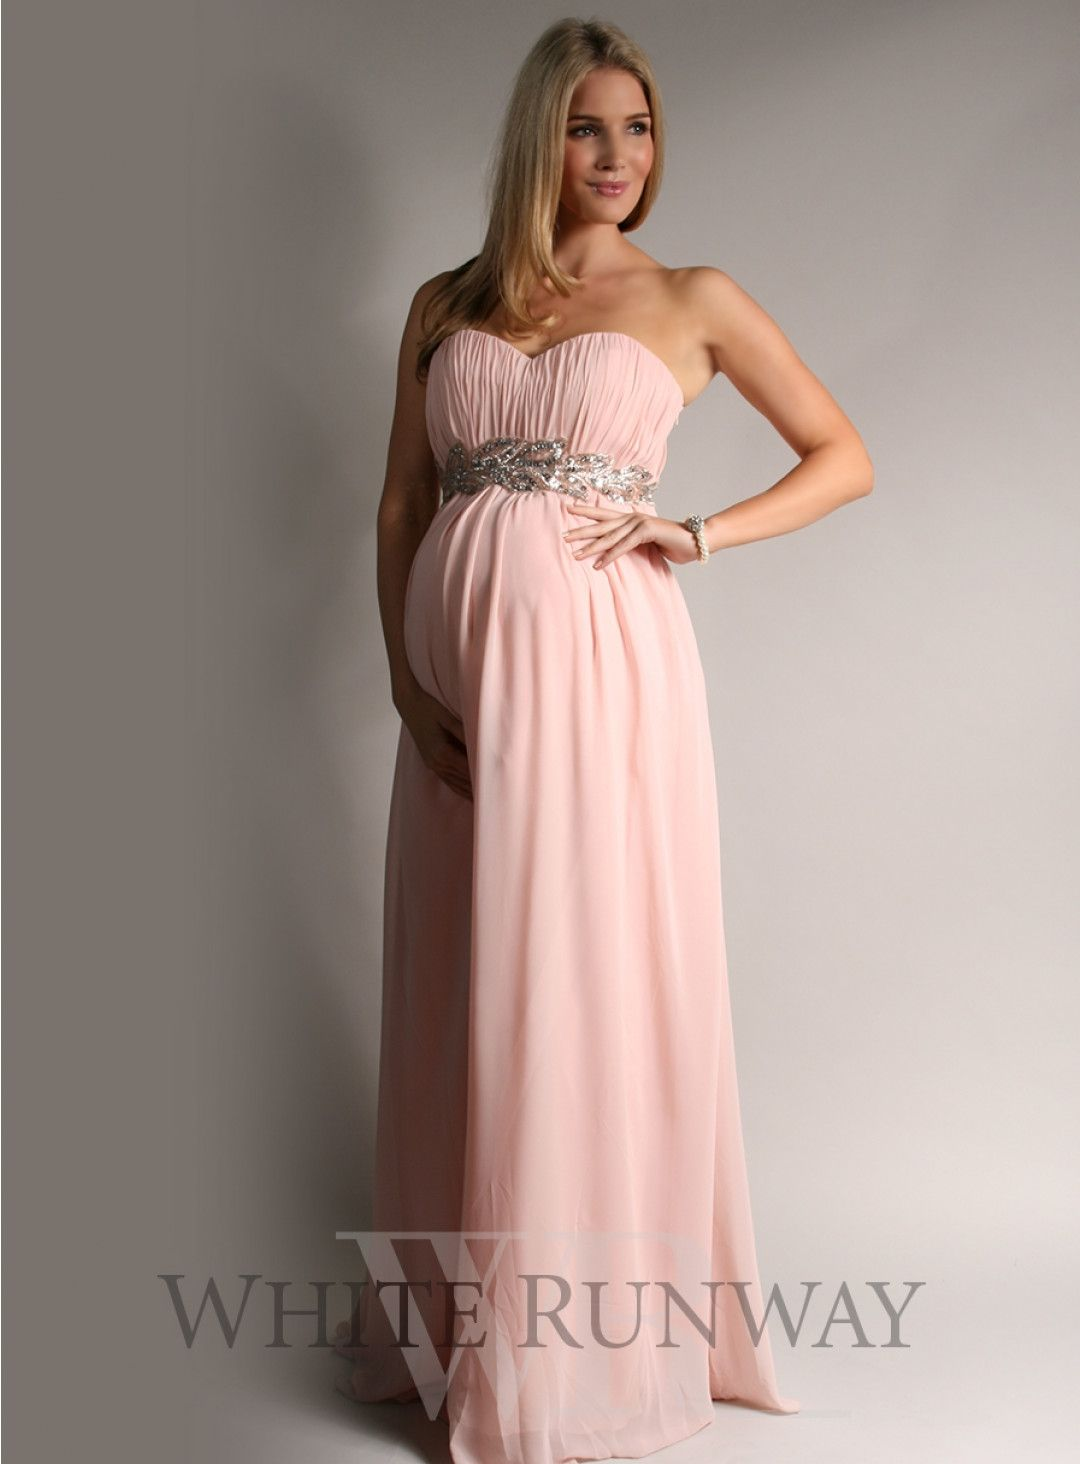 Grecian Strapless Dress. A strapless formal dress with a Grecian ...